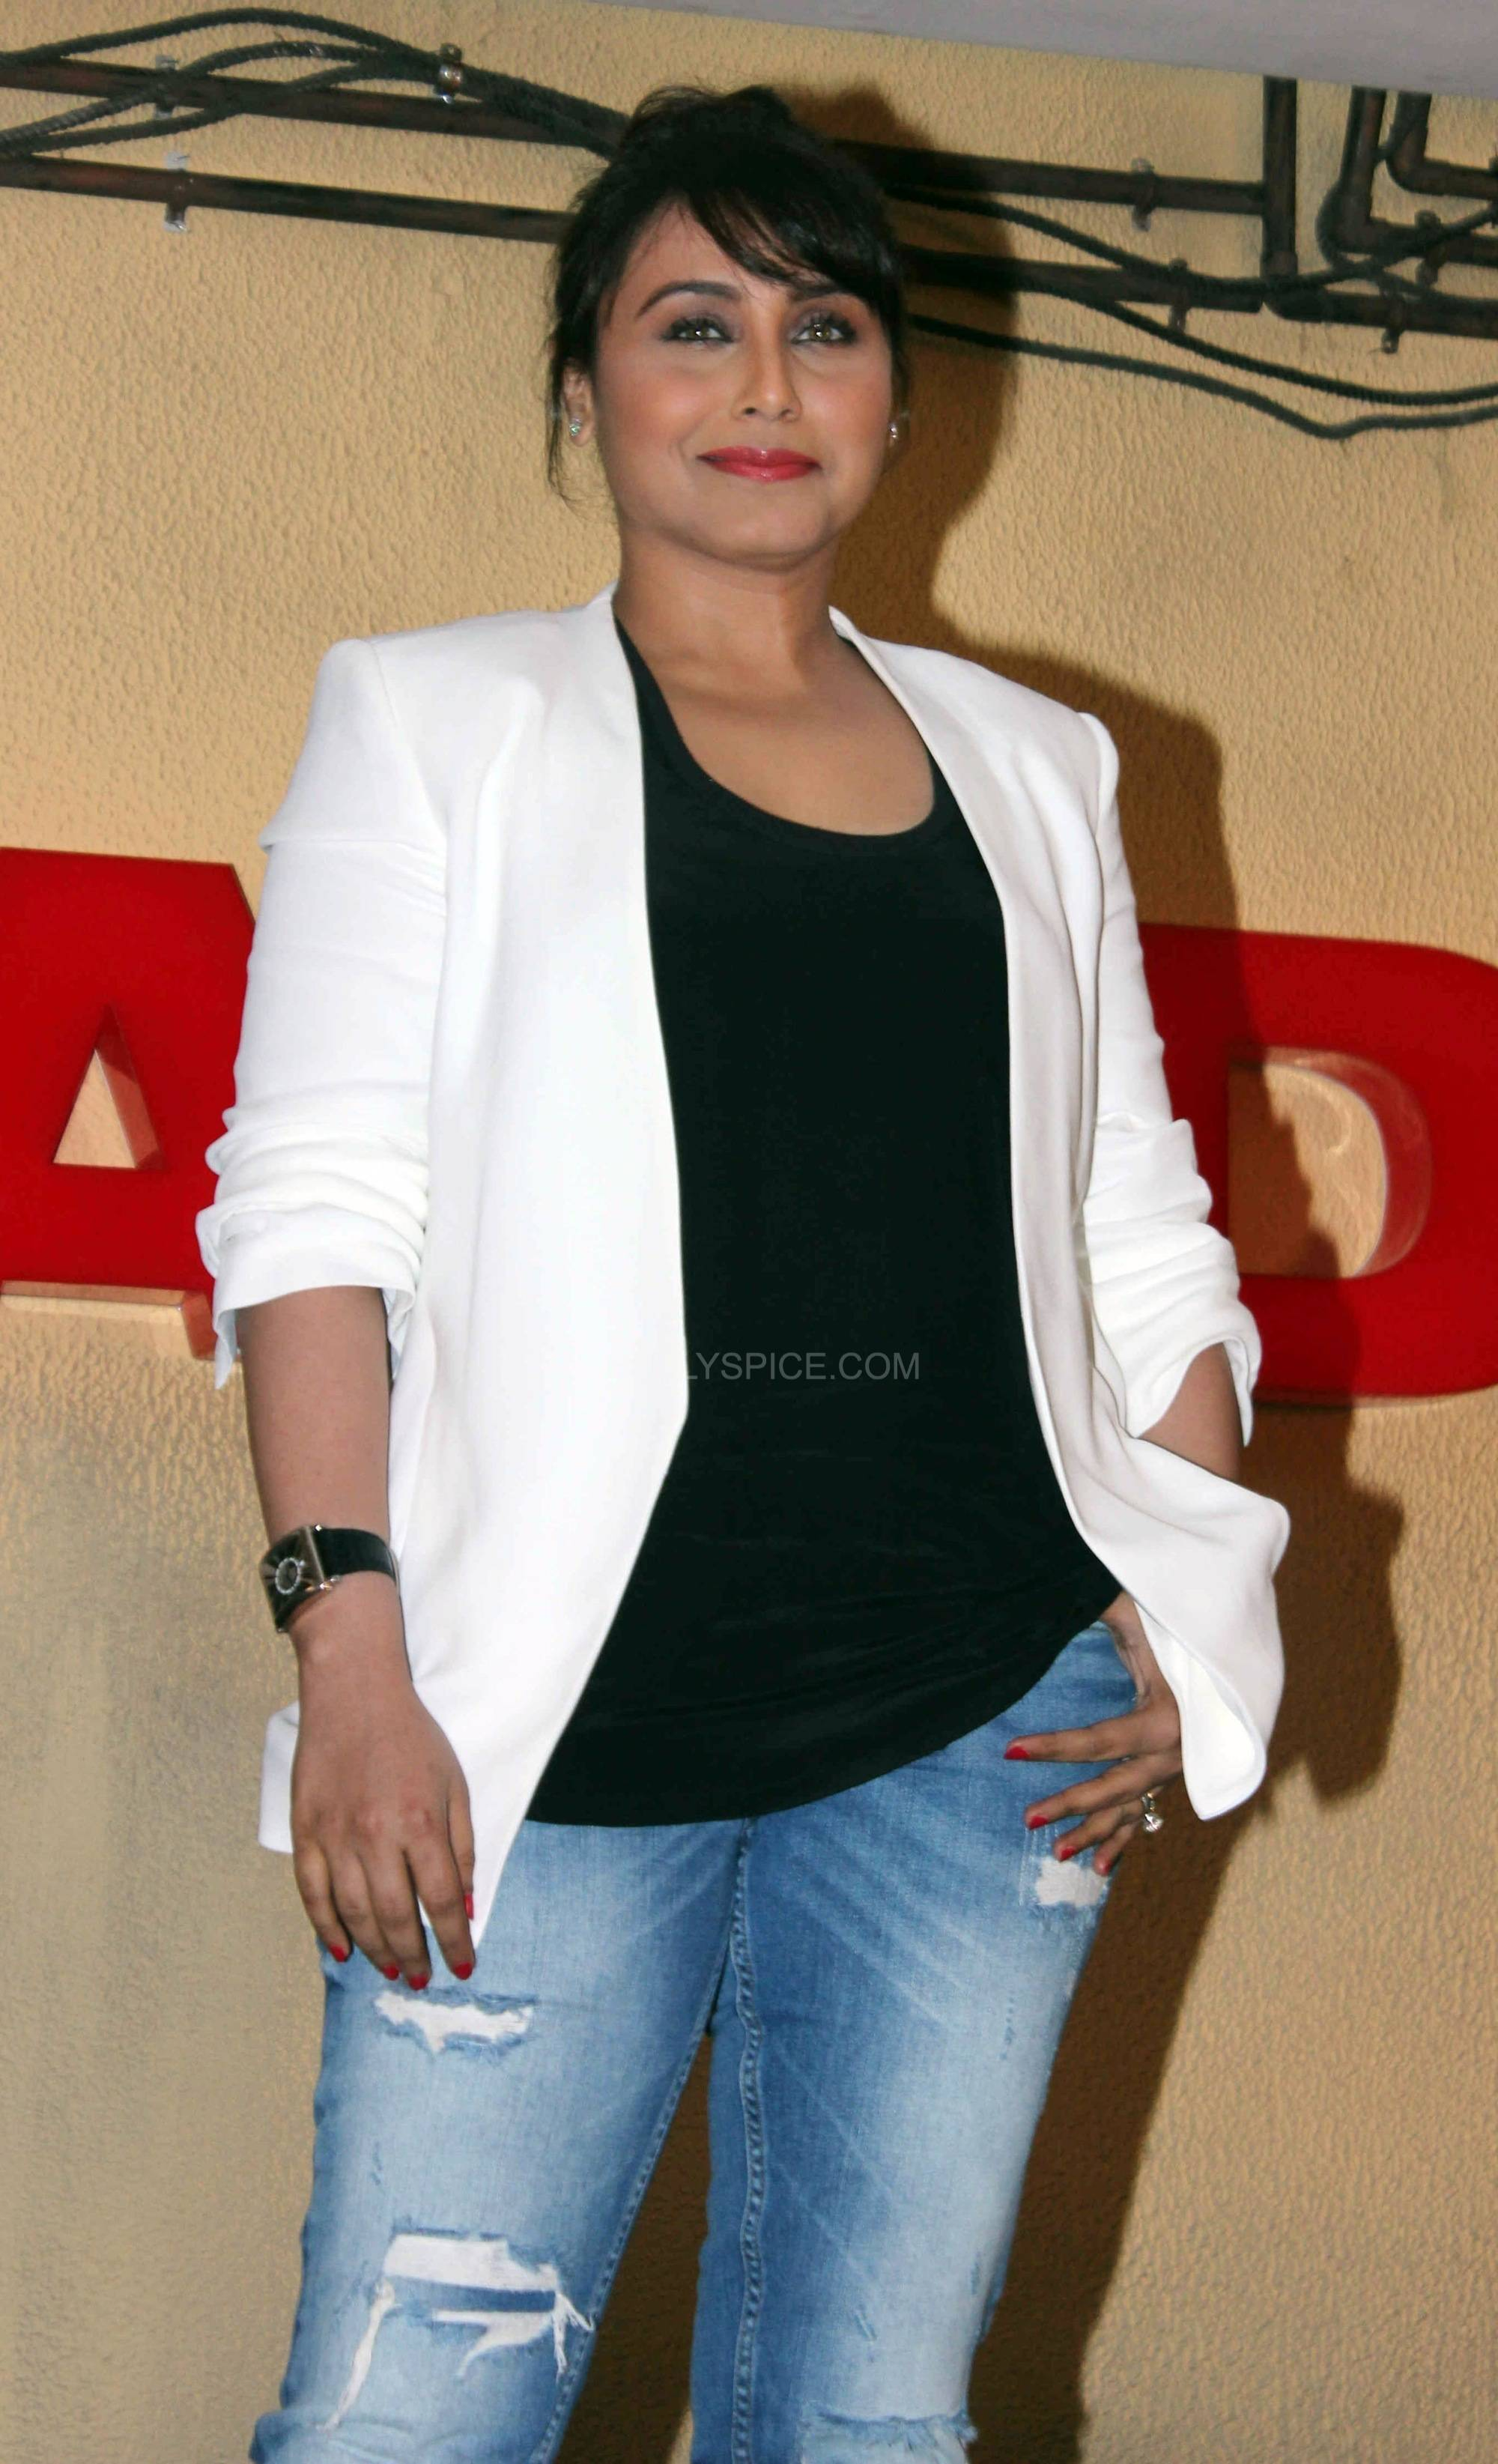 ranimardaanitrailerlaunch1 In Pictures: Rani at Mardaani Trailer Launch